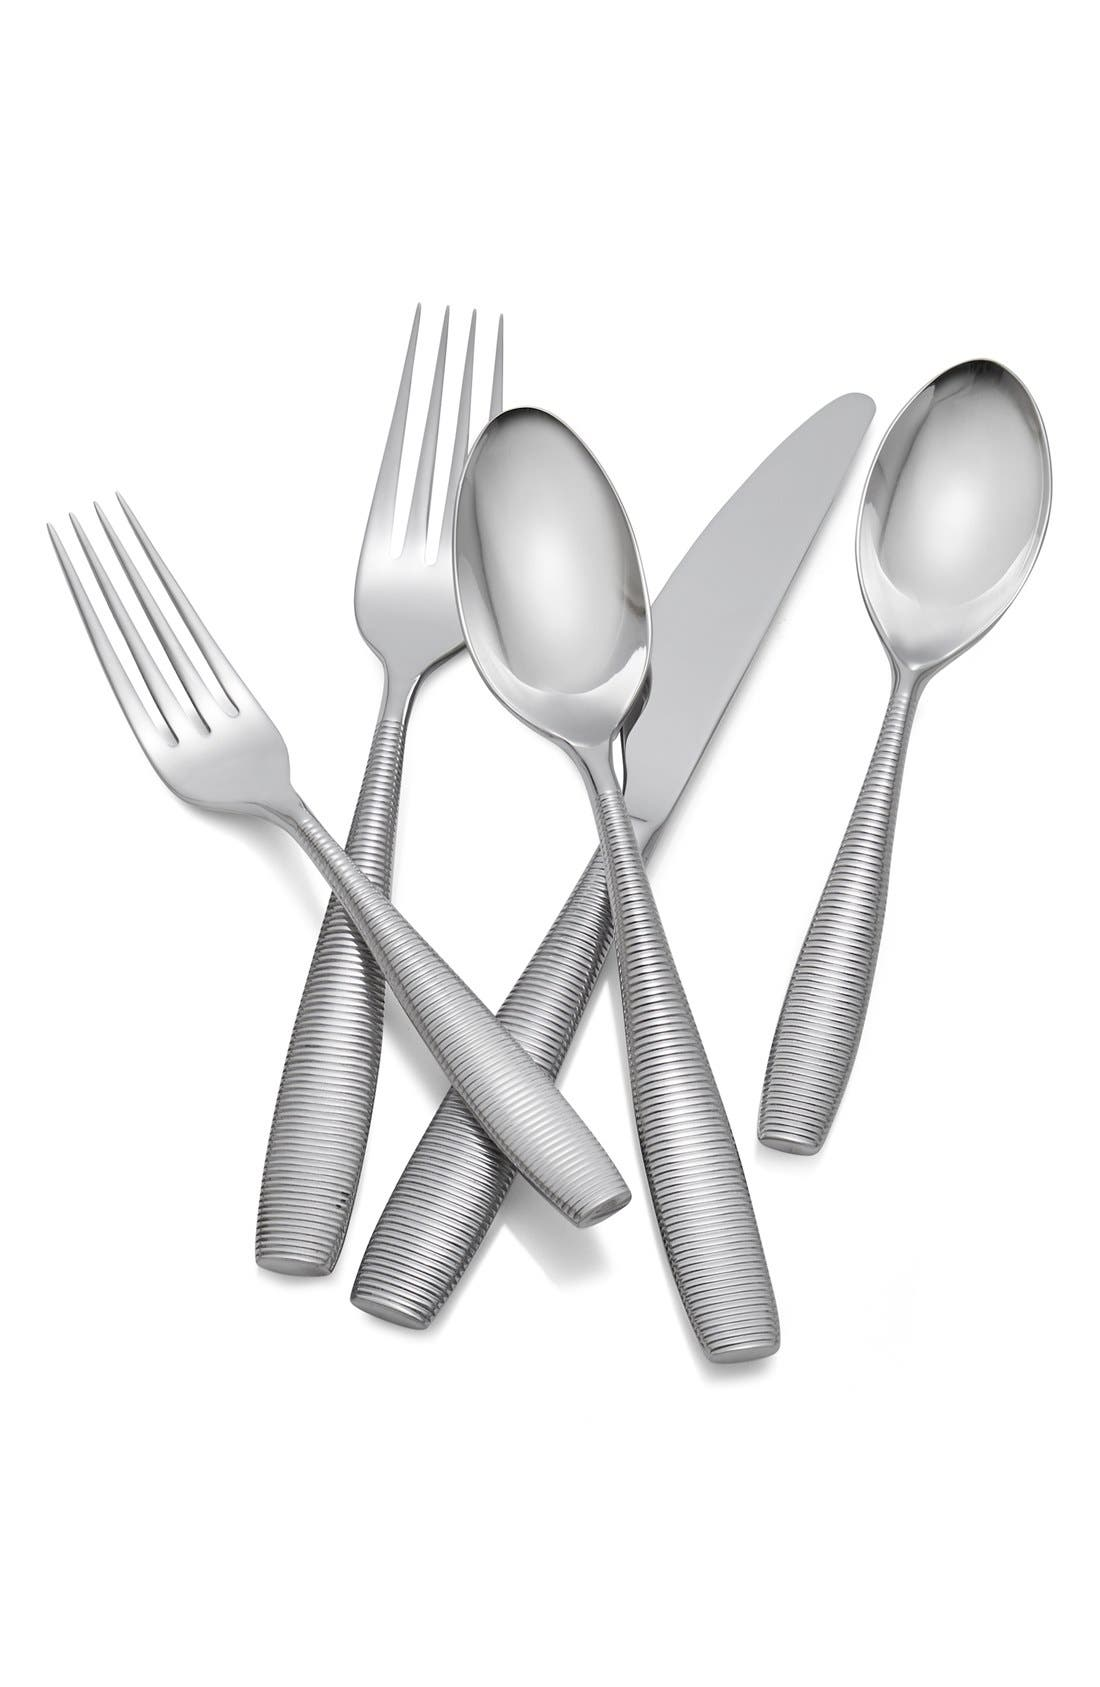 Alternate Image 1 Selected - Nambé 'Fiona' 5-Piece Stainless Steel Place Setting